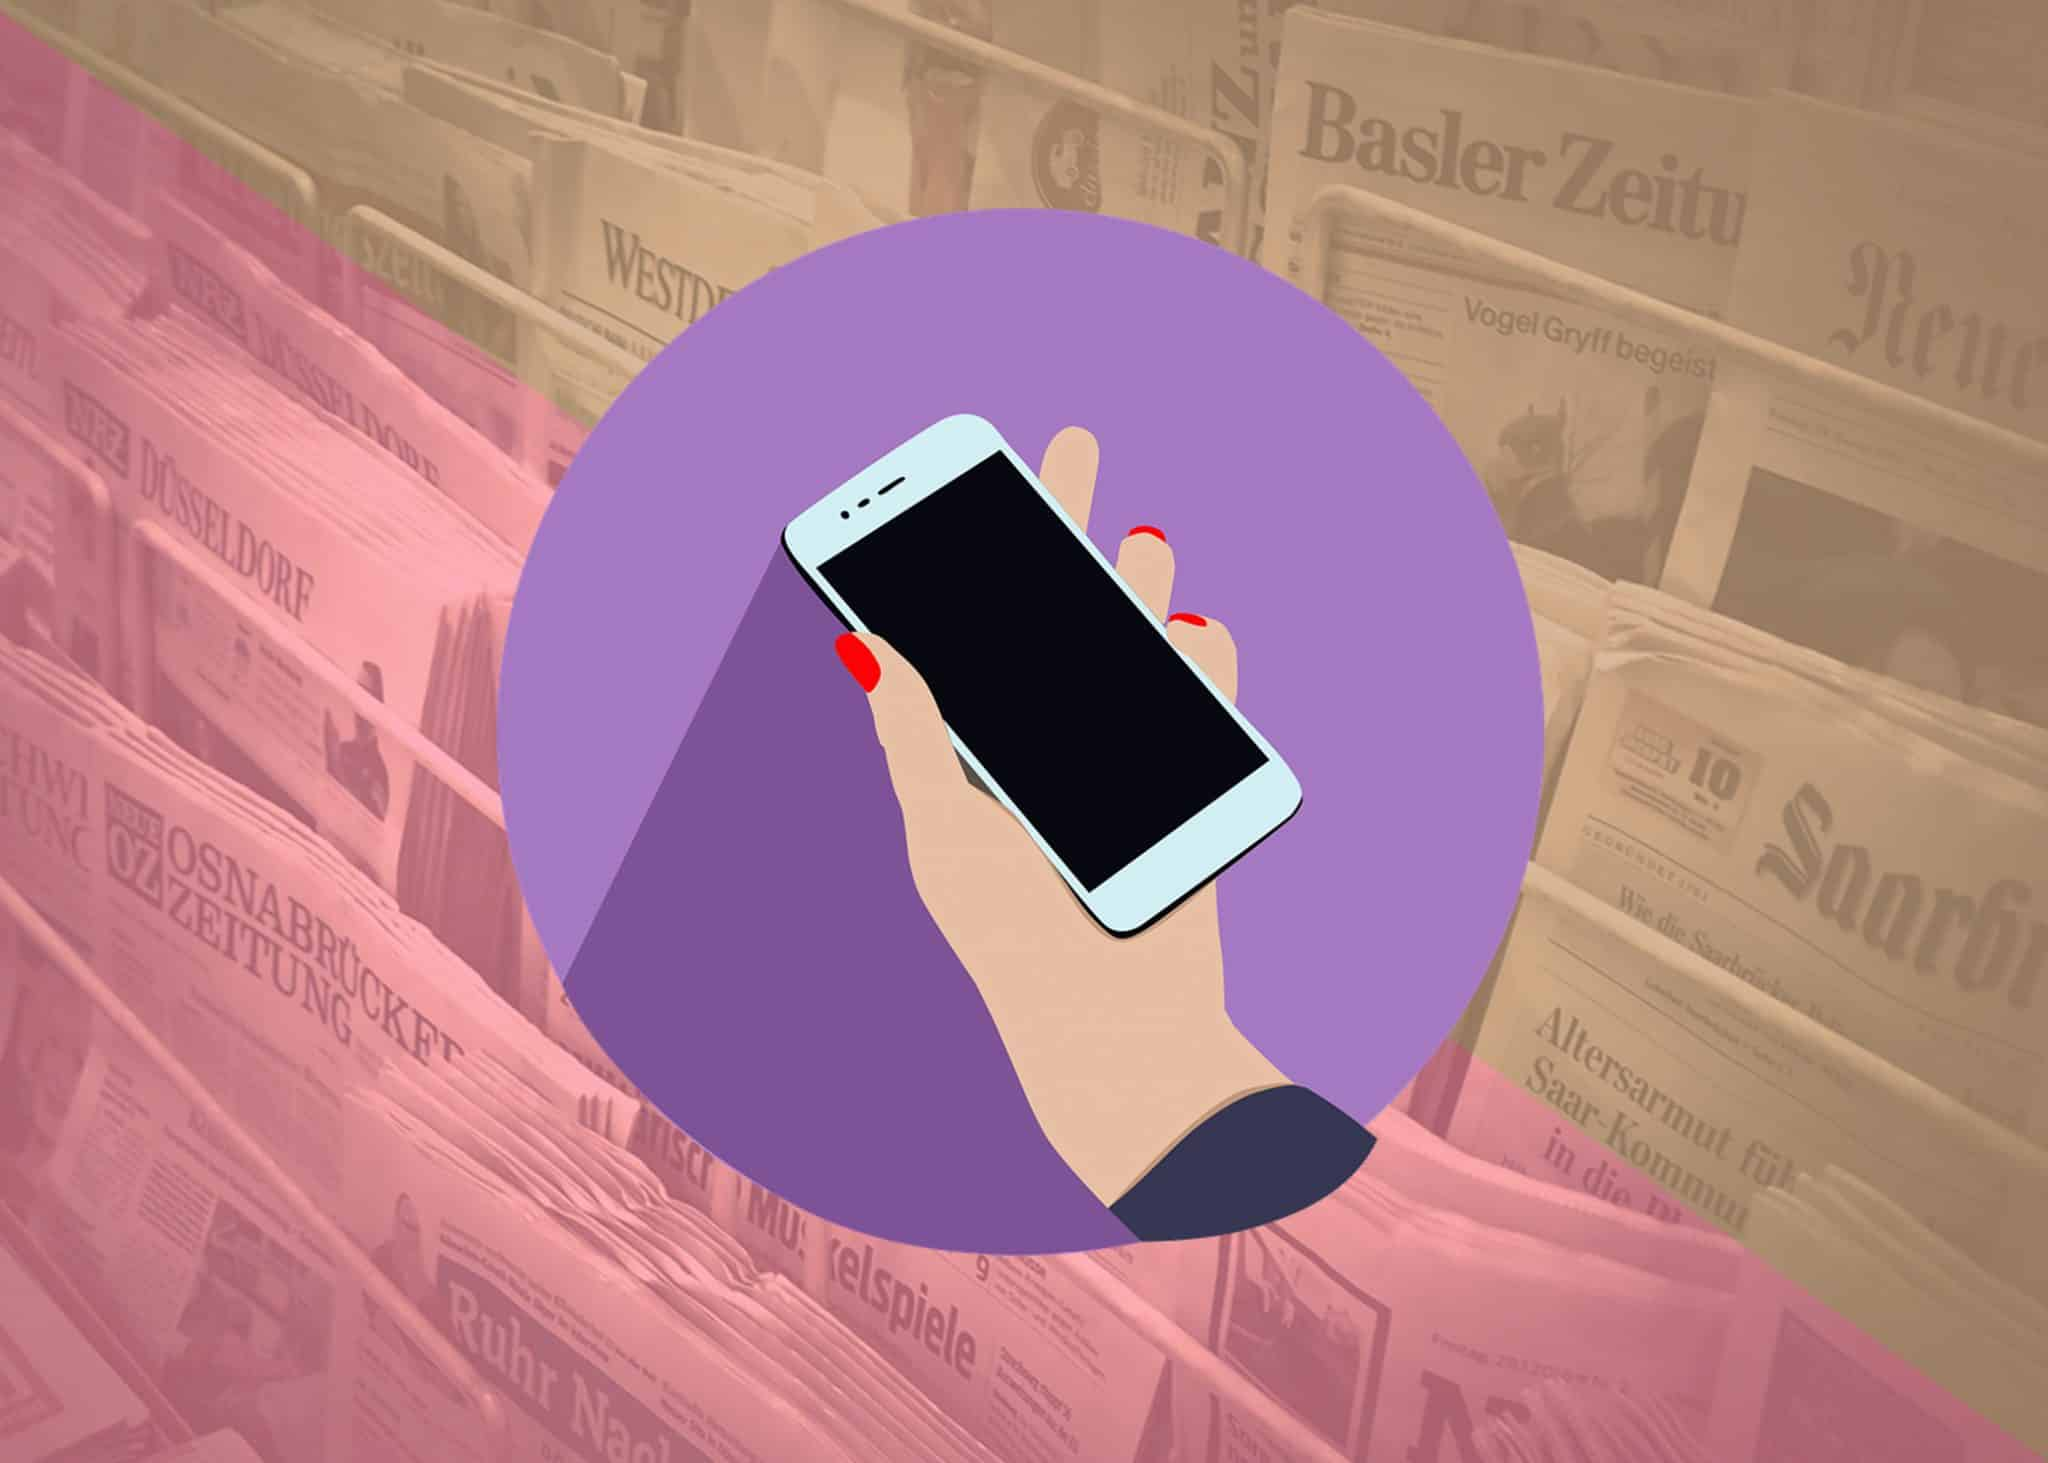 Mobile phone against background of newspapers